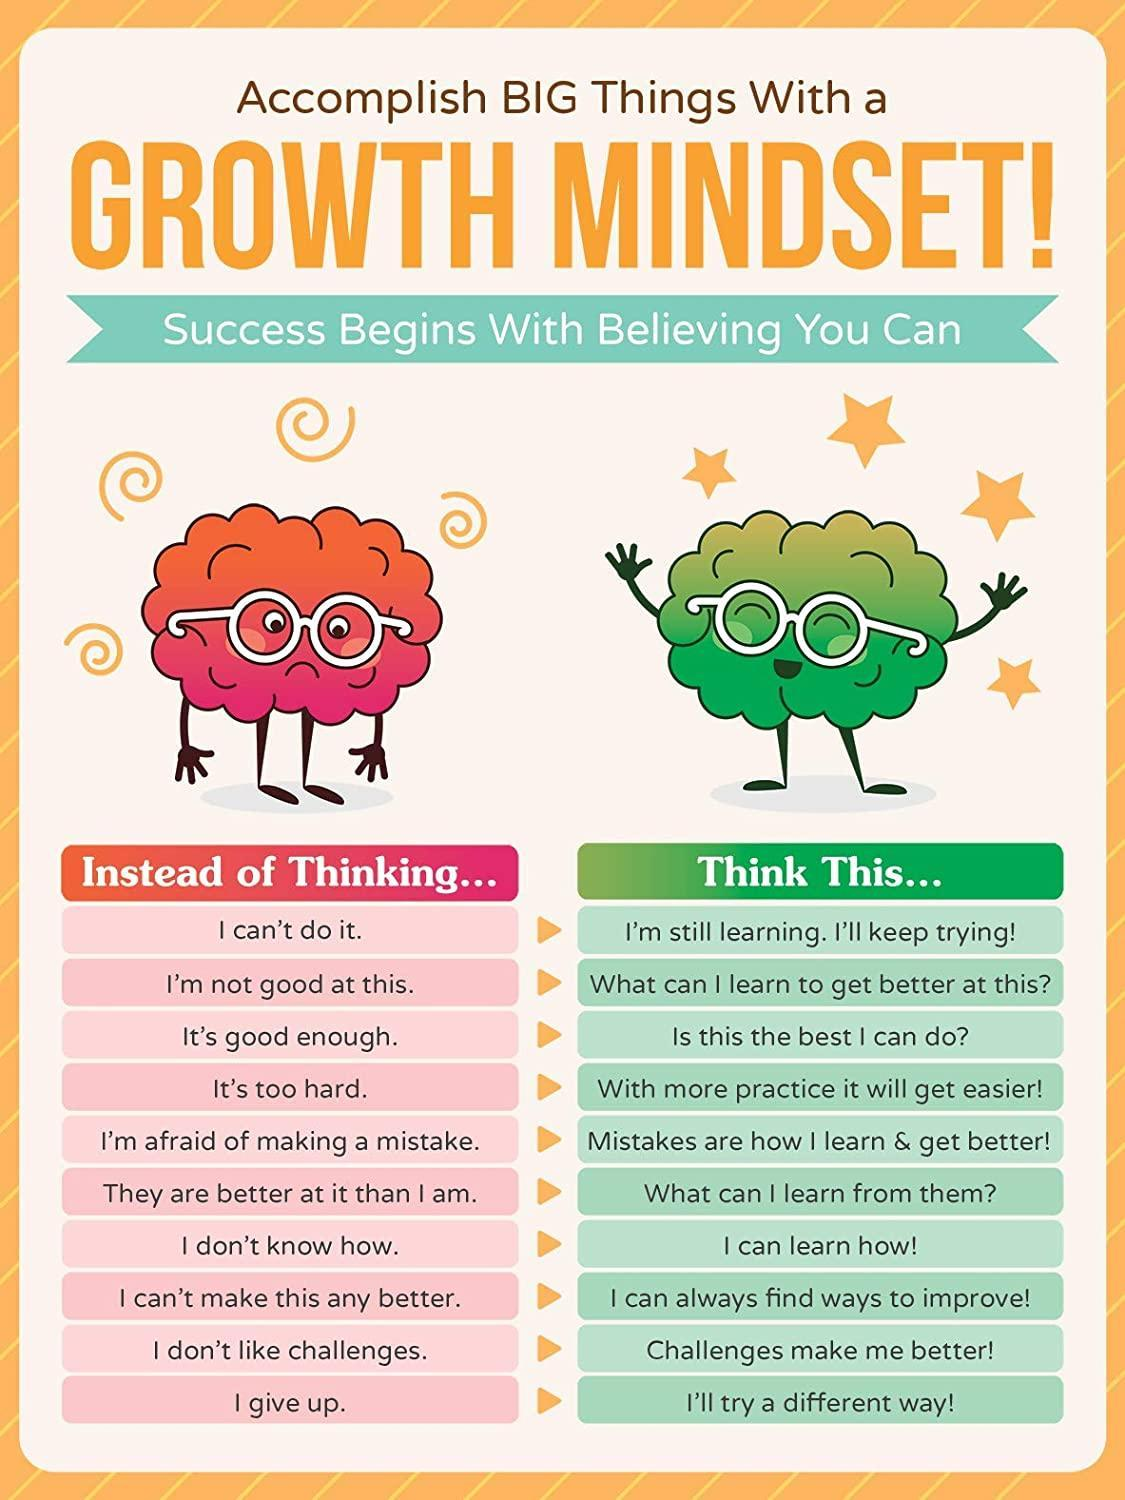 Accomplish BIG Things with a Growth Mindset